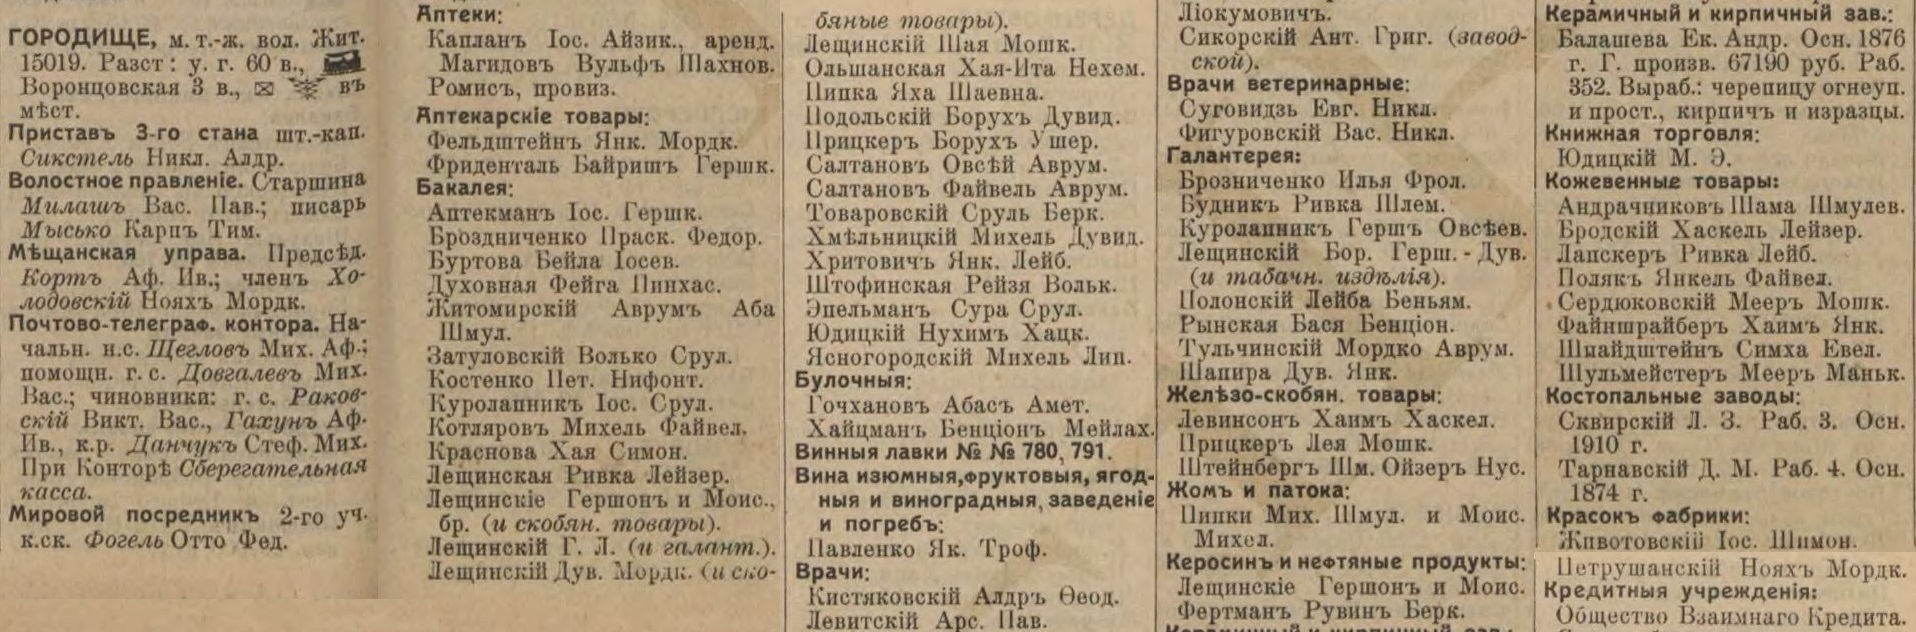 Horodyshche entrepreneurs list from Russian Empire Business Directories by 1913, part 1